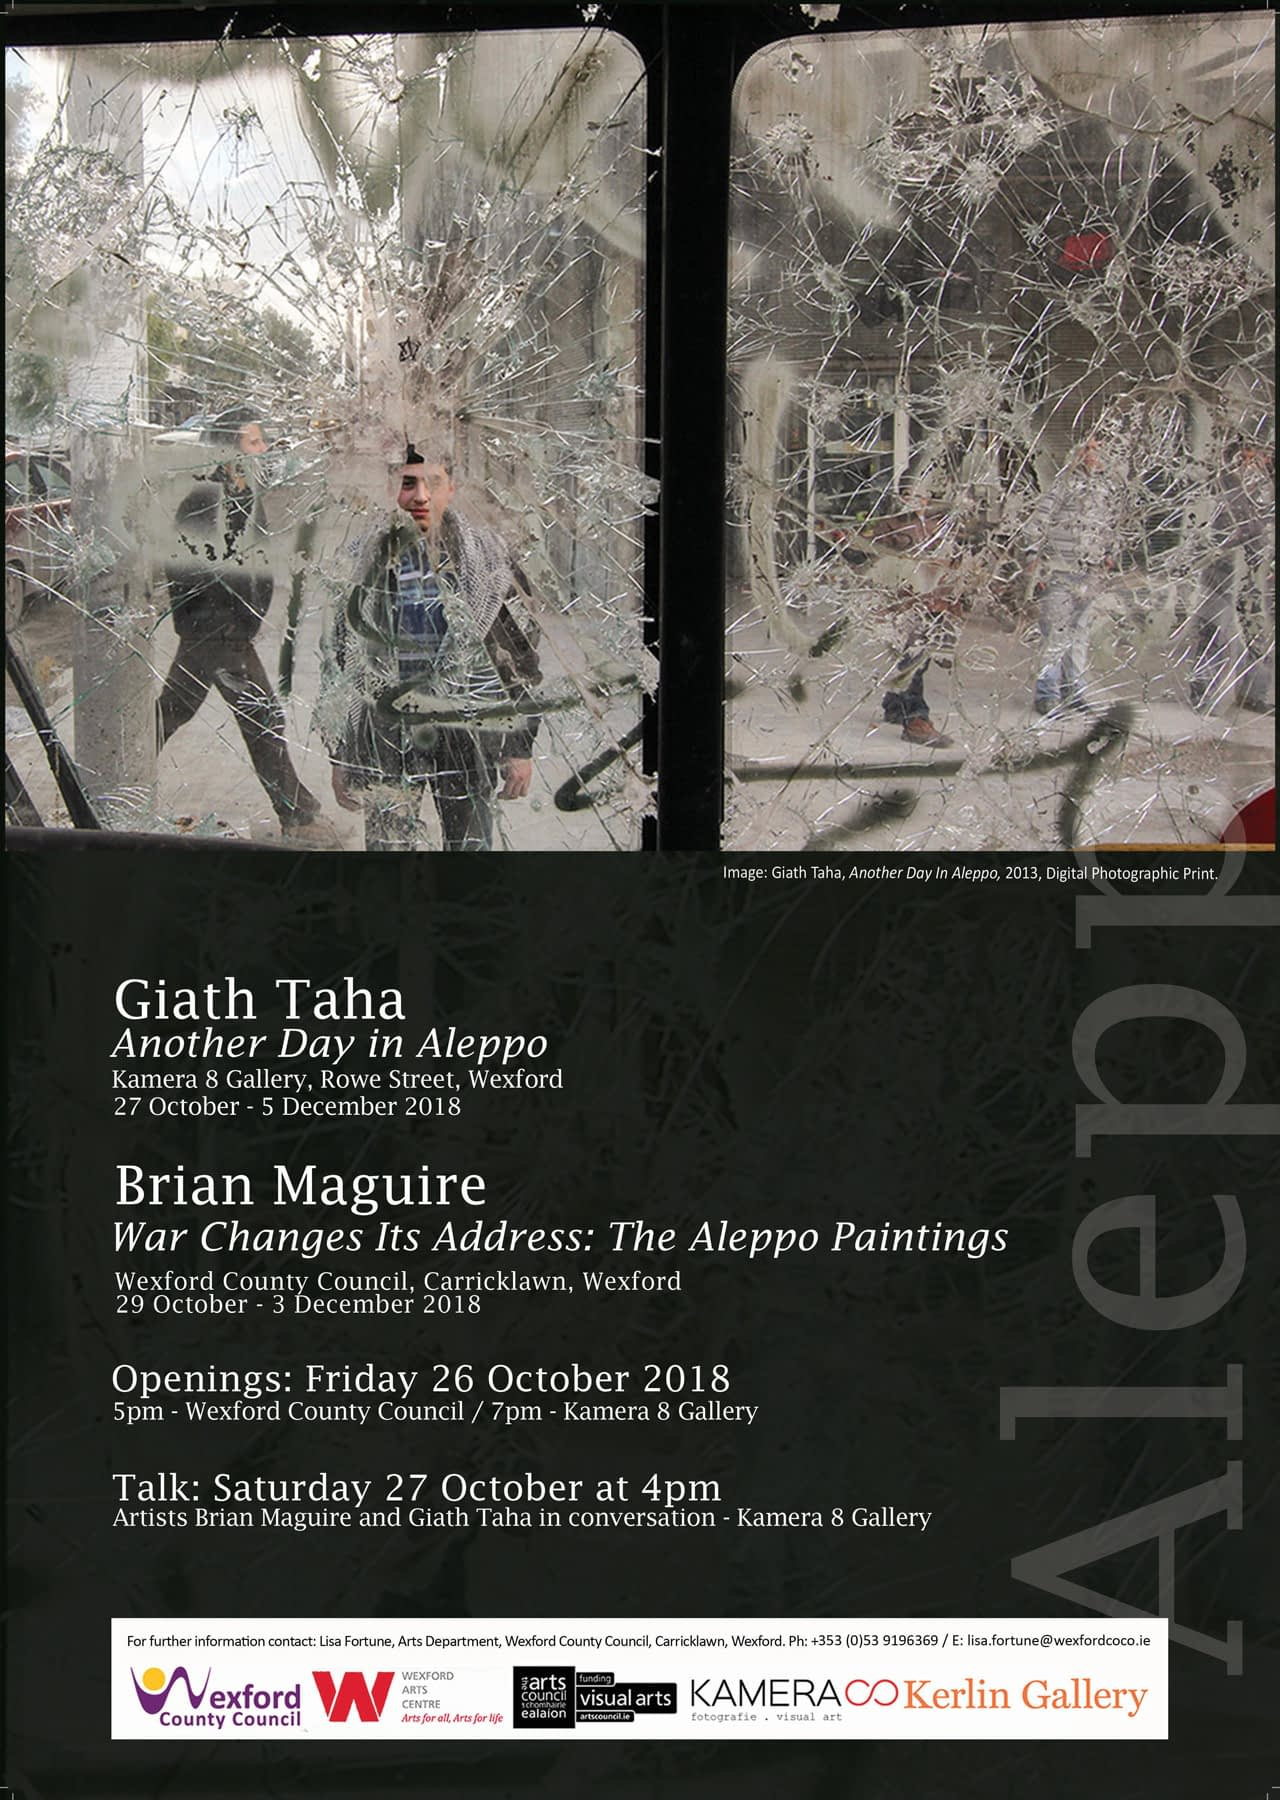 Giath Taha - Another Day in Aleppo - KAMERA 8 Exhibition